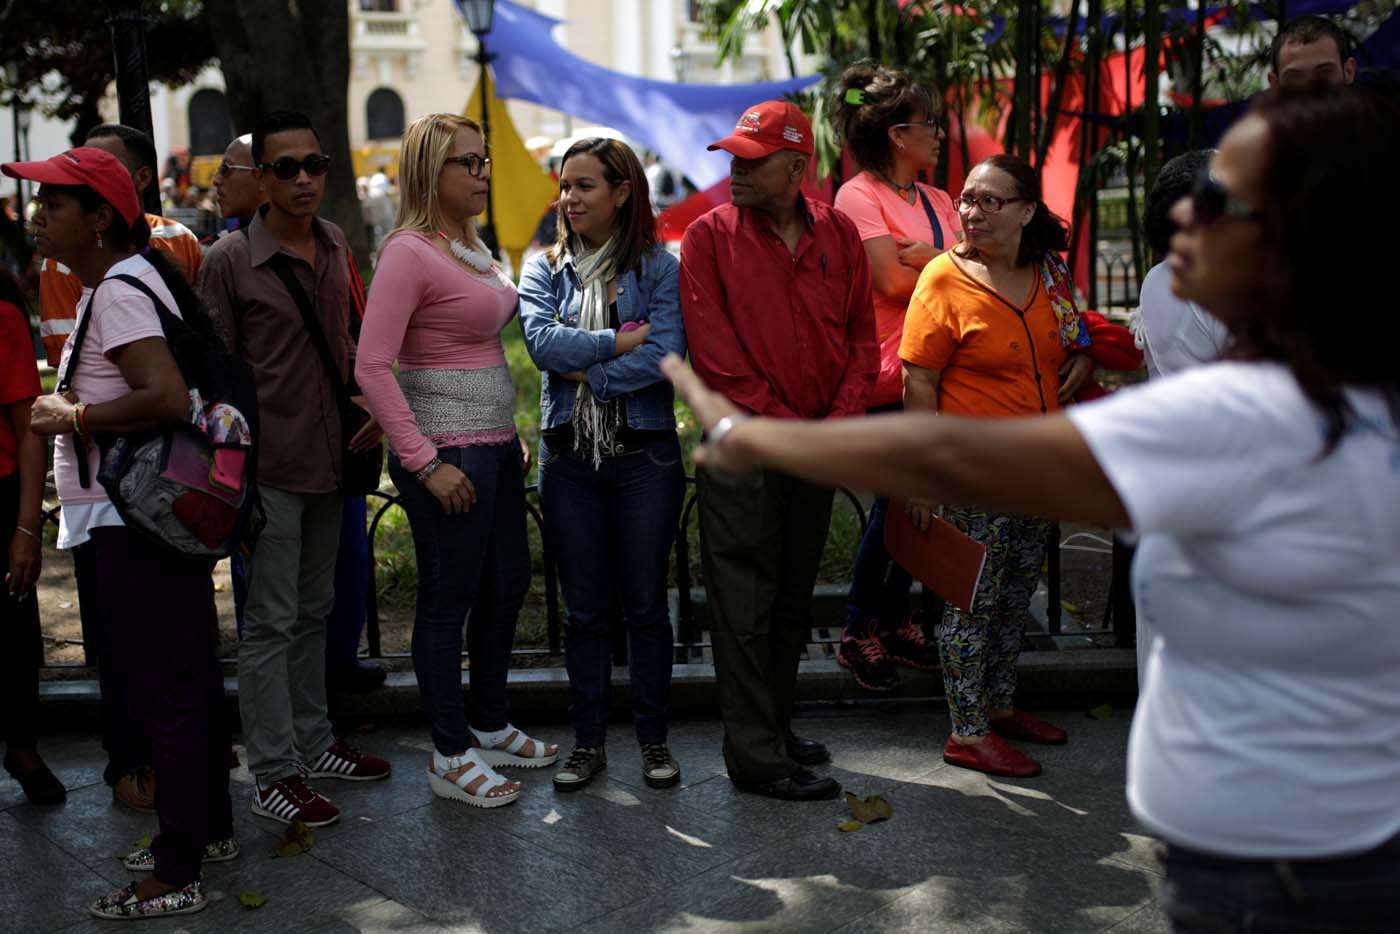 People wait to apply for a card that will register them for government social programmes, in Caracas, Venezuela January 20, 2017. REUTERS/Marco Bello